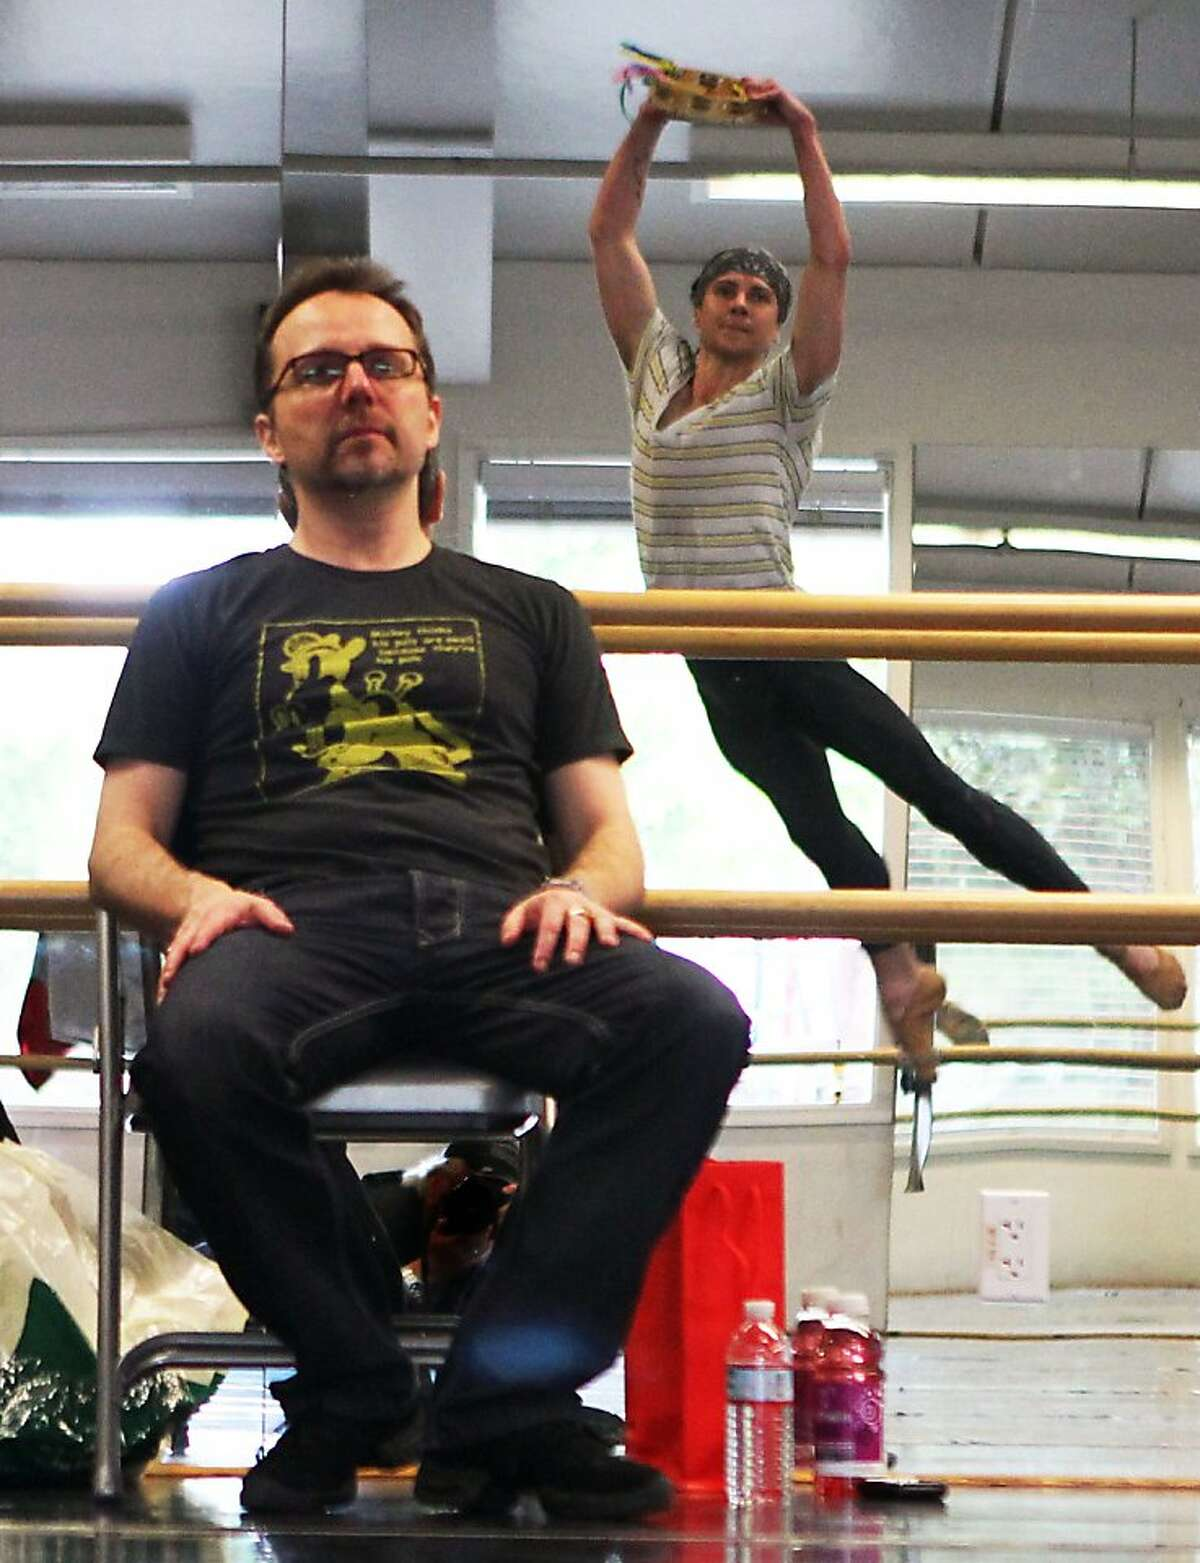 Christopher Stowell, Artistic Director of the Oregon Ballet Theater, gives direction to Robert Dekkers during a rehearsal, as Stowell begins arranging George Balanchine's